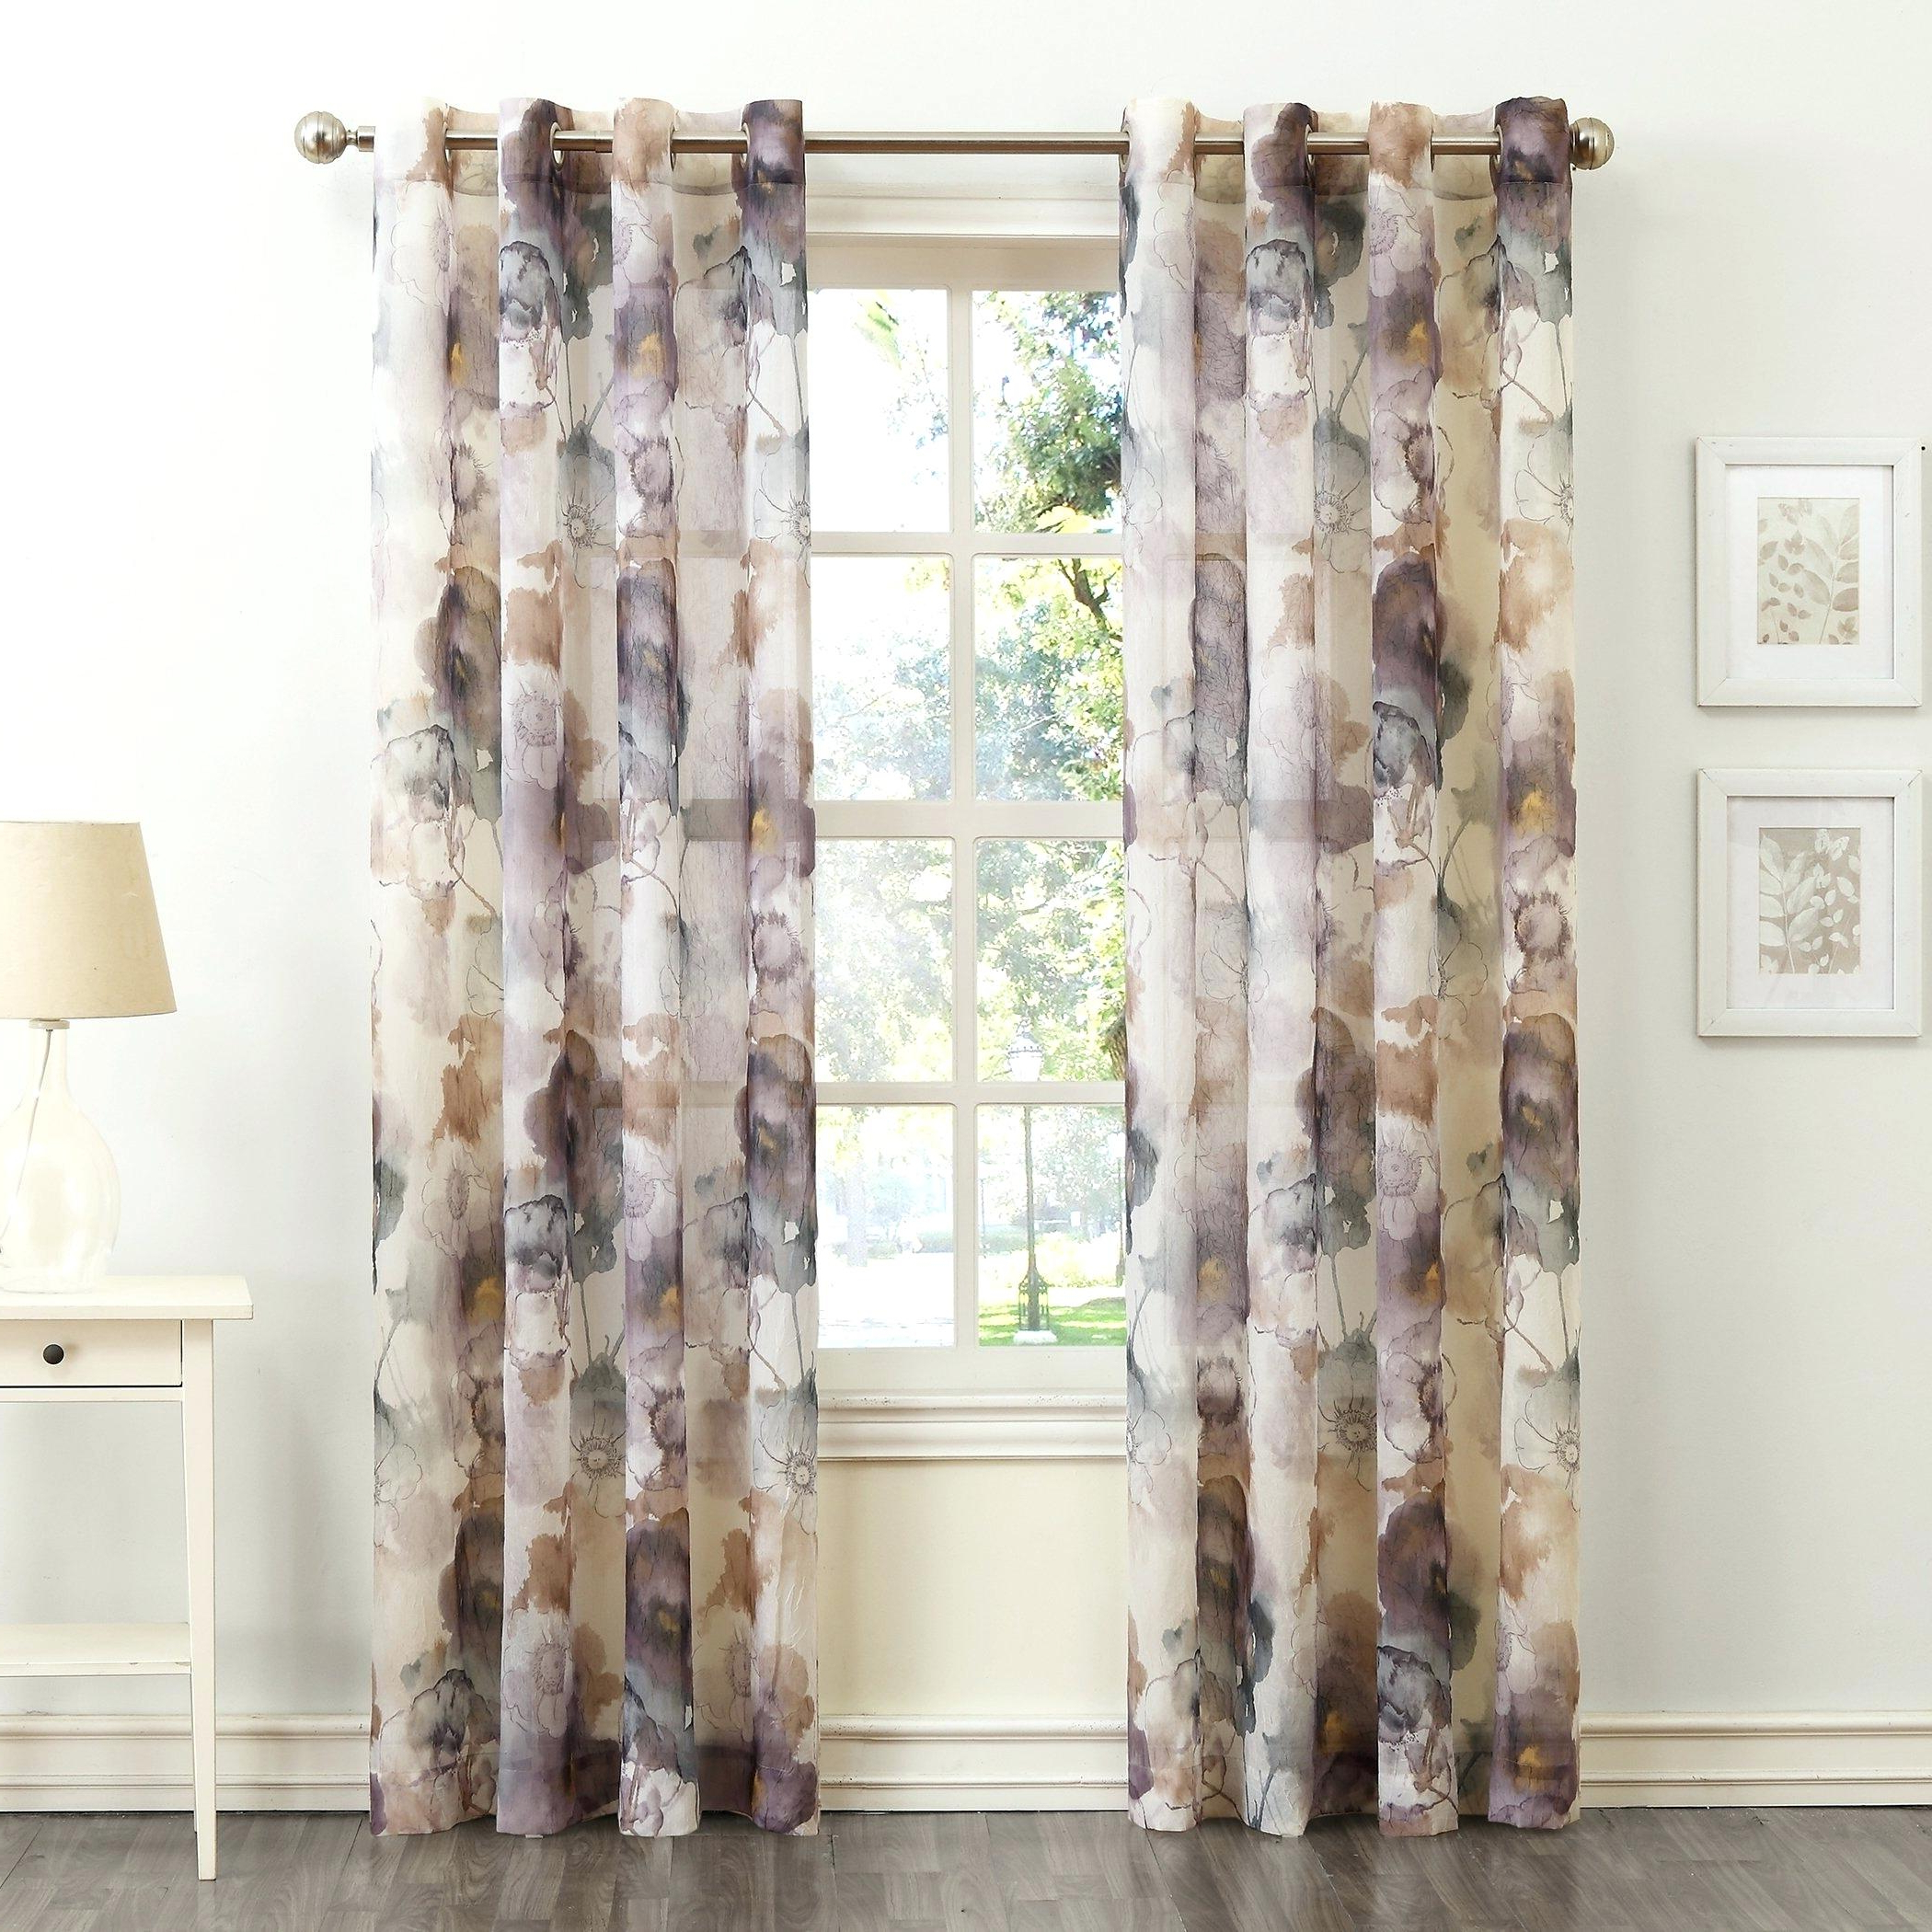 Intersect Grommet Woven Print Window Curtain Panels Regarding Favorite No 918 Curtains – Bshteam (View 14 of 20)